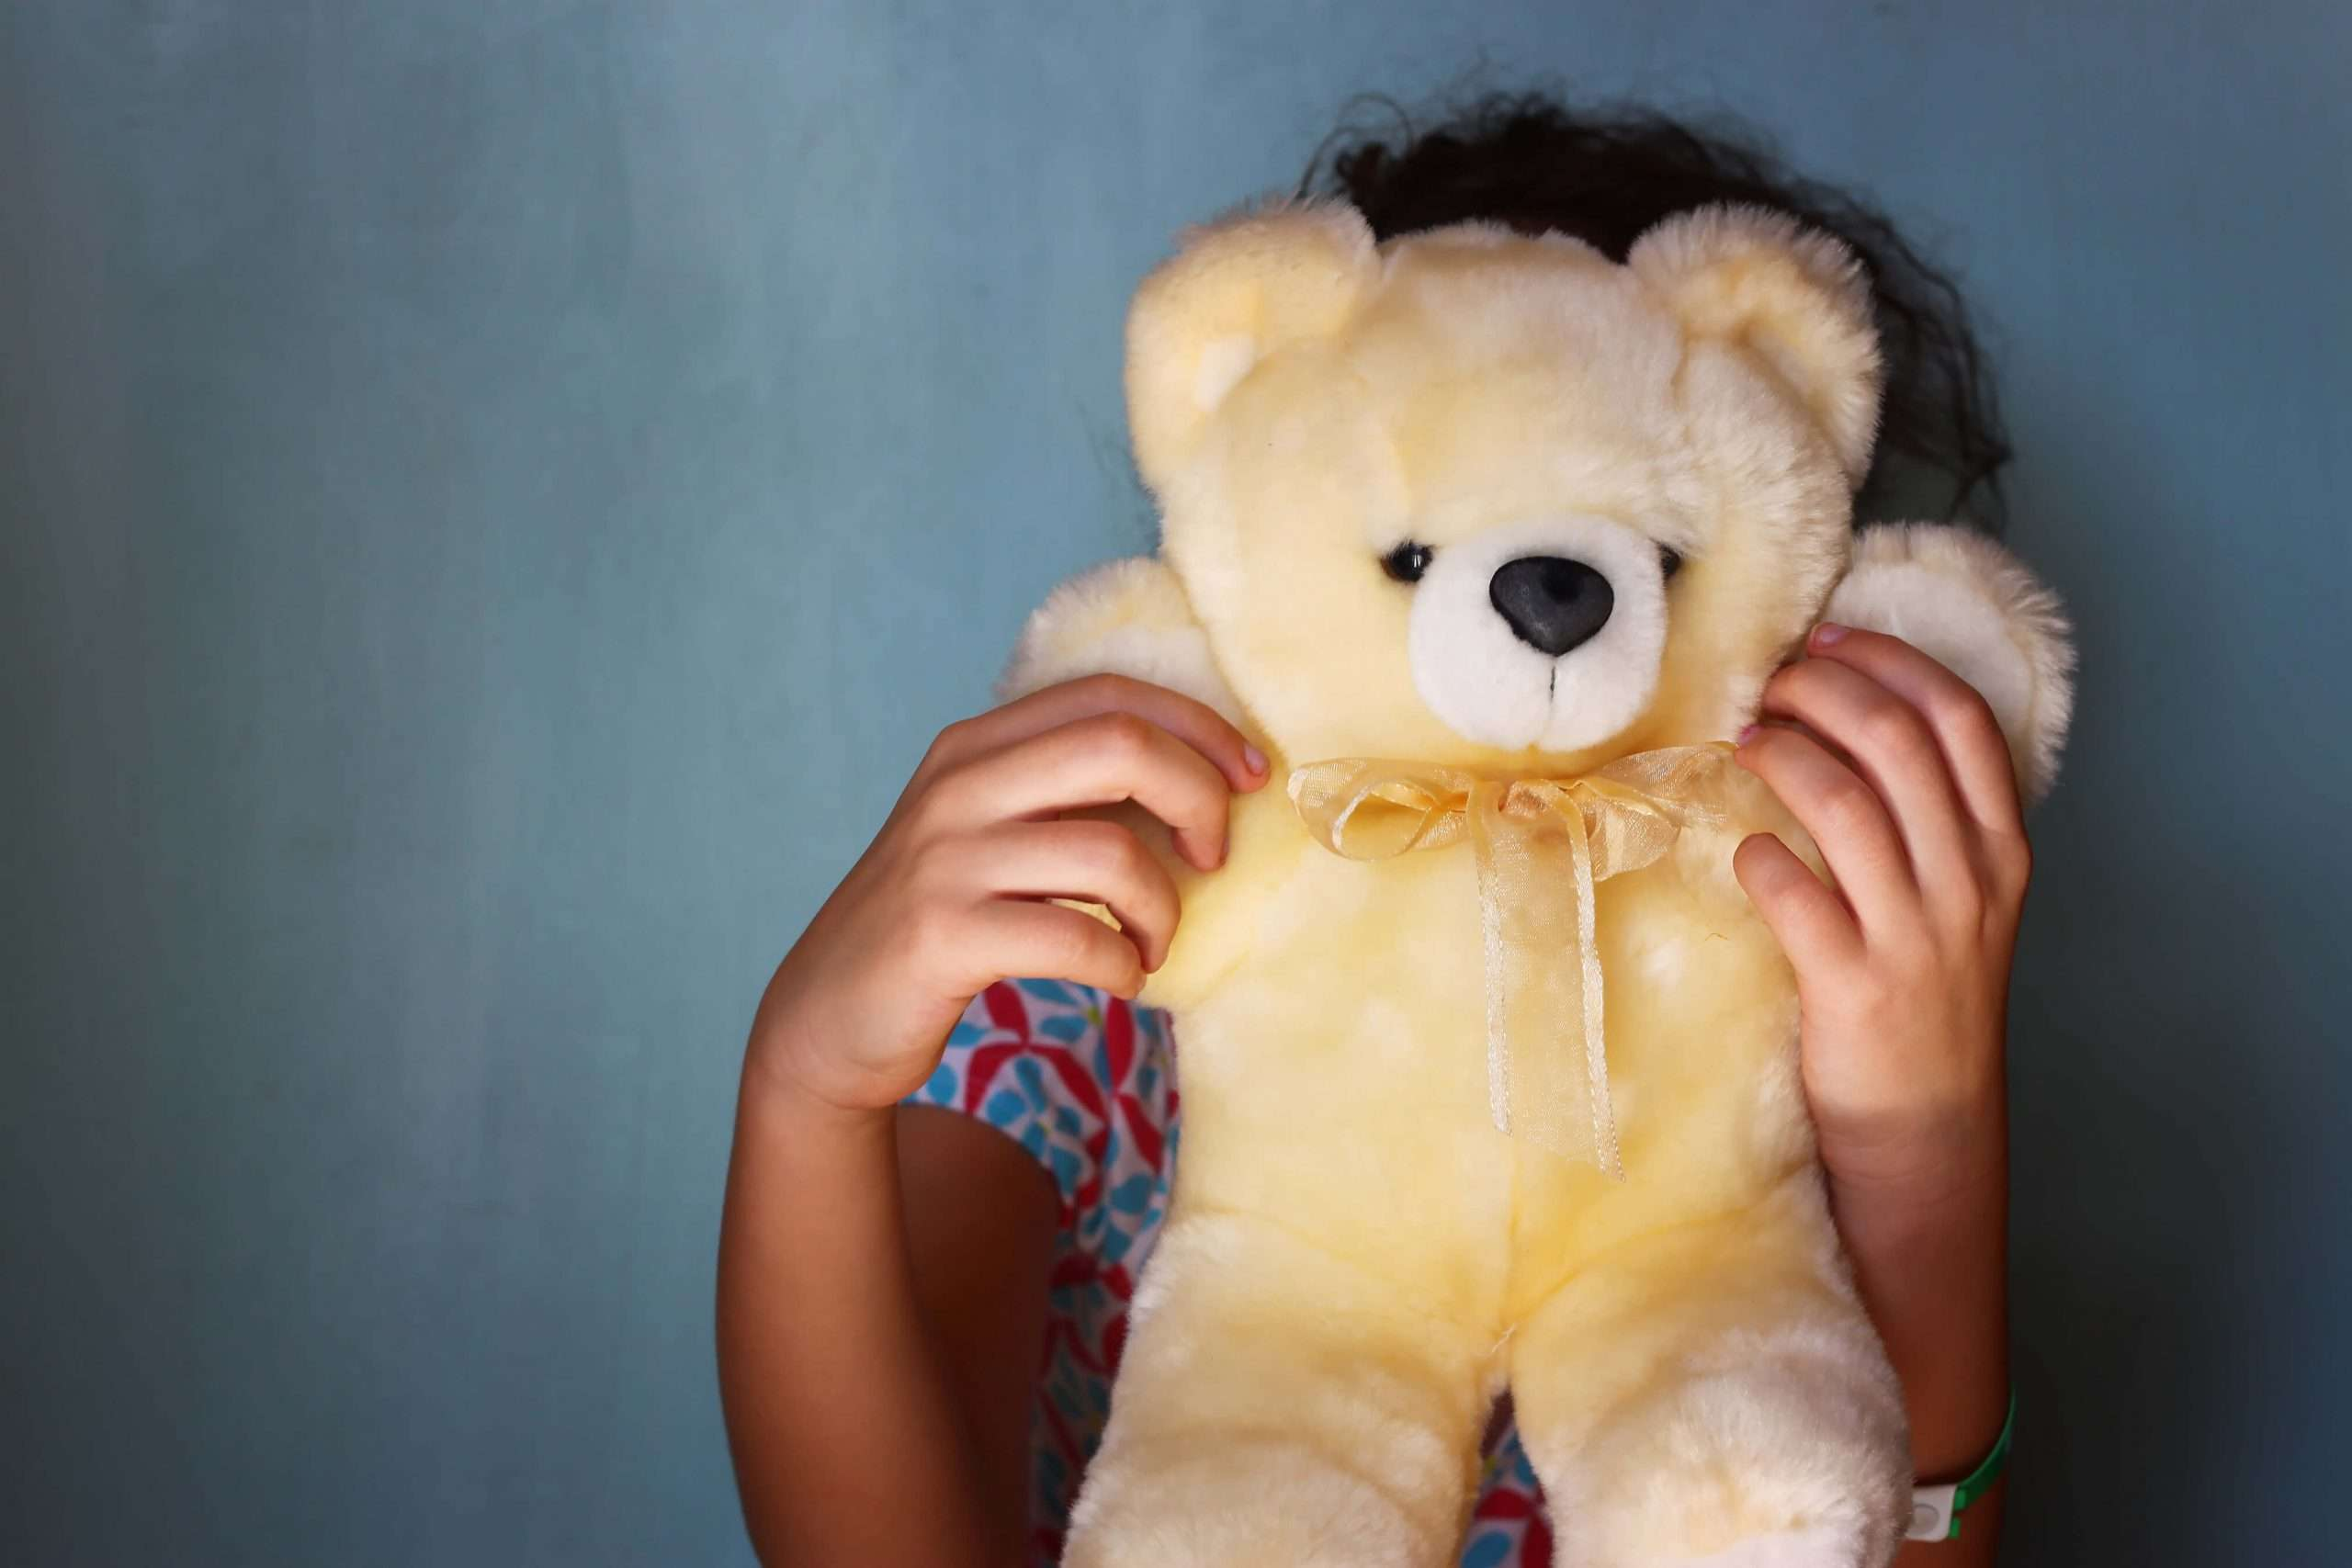 Waji Mental Healthcare Depositphotos_51-scaled Overcoming Child Abuse and Neglect